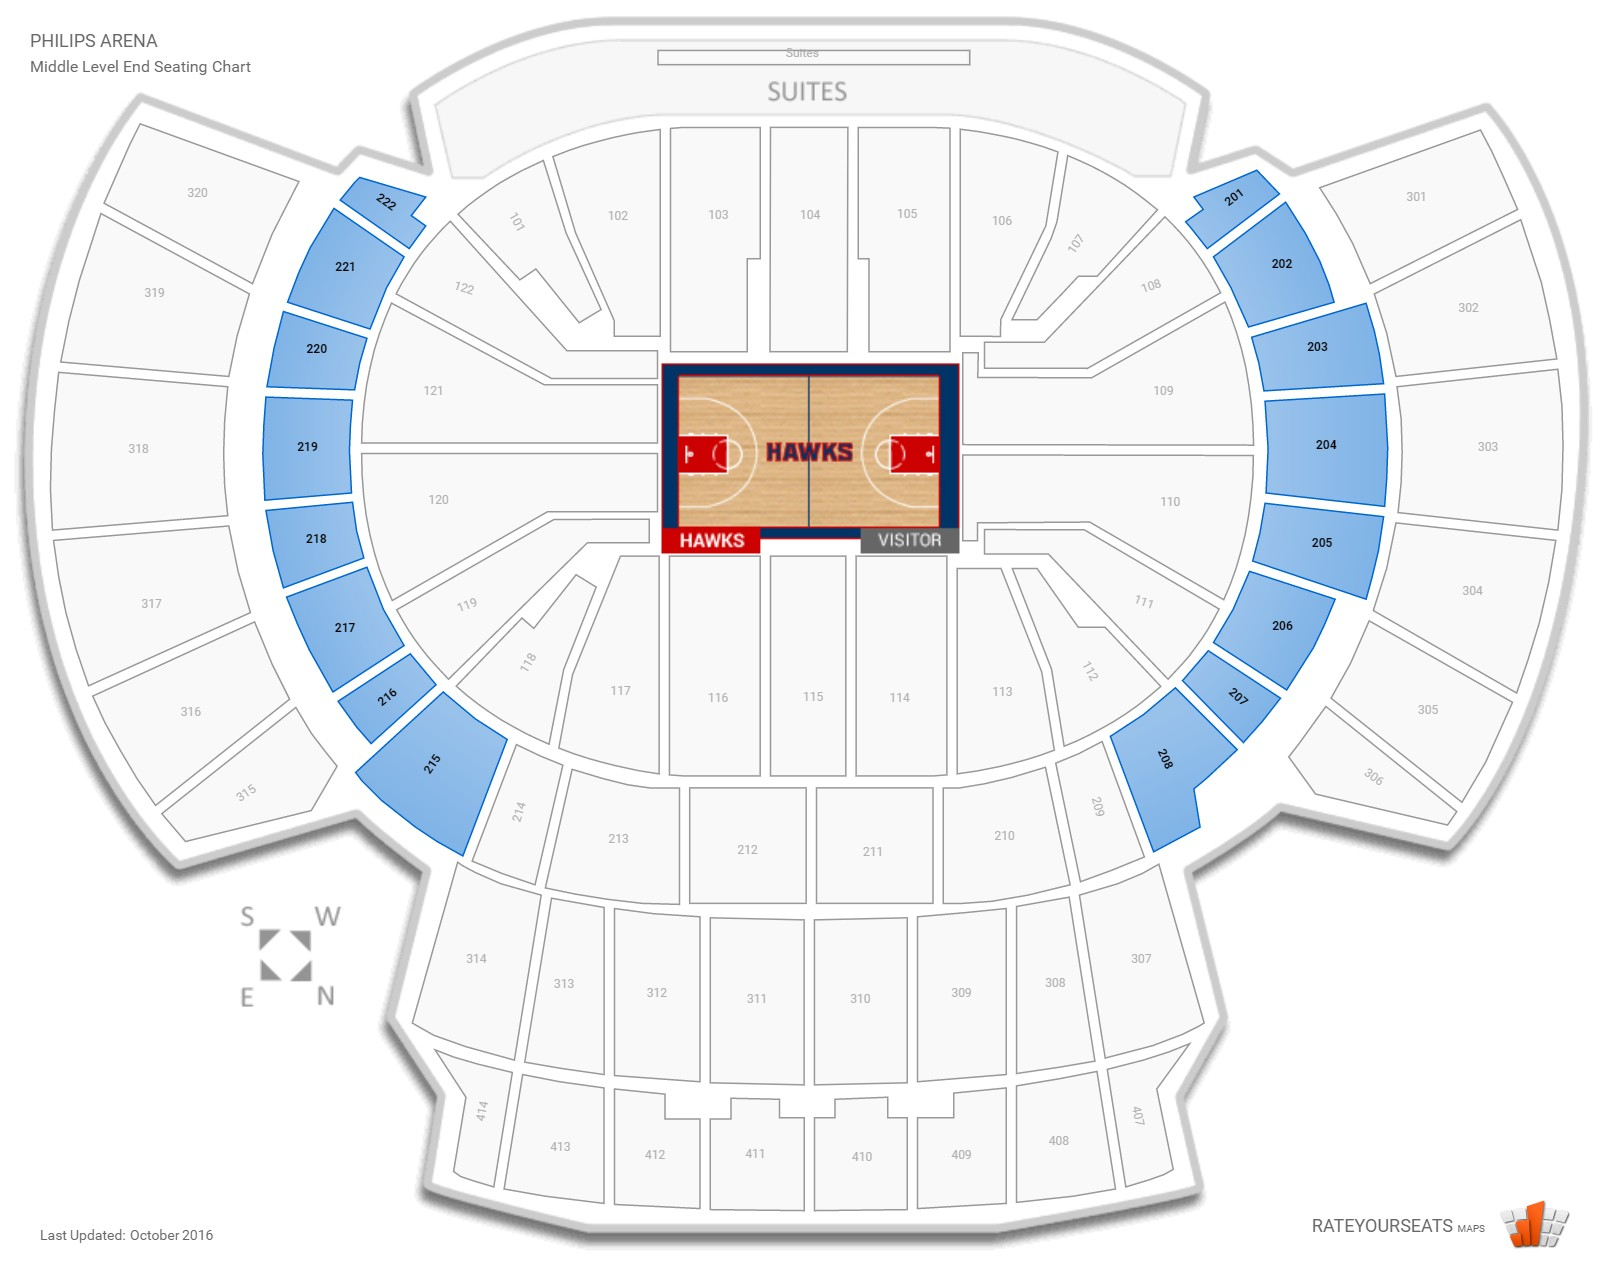 Philips Arena Middle Level End seating chart